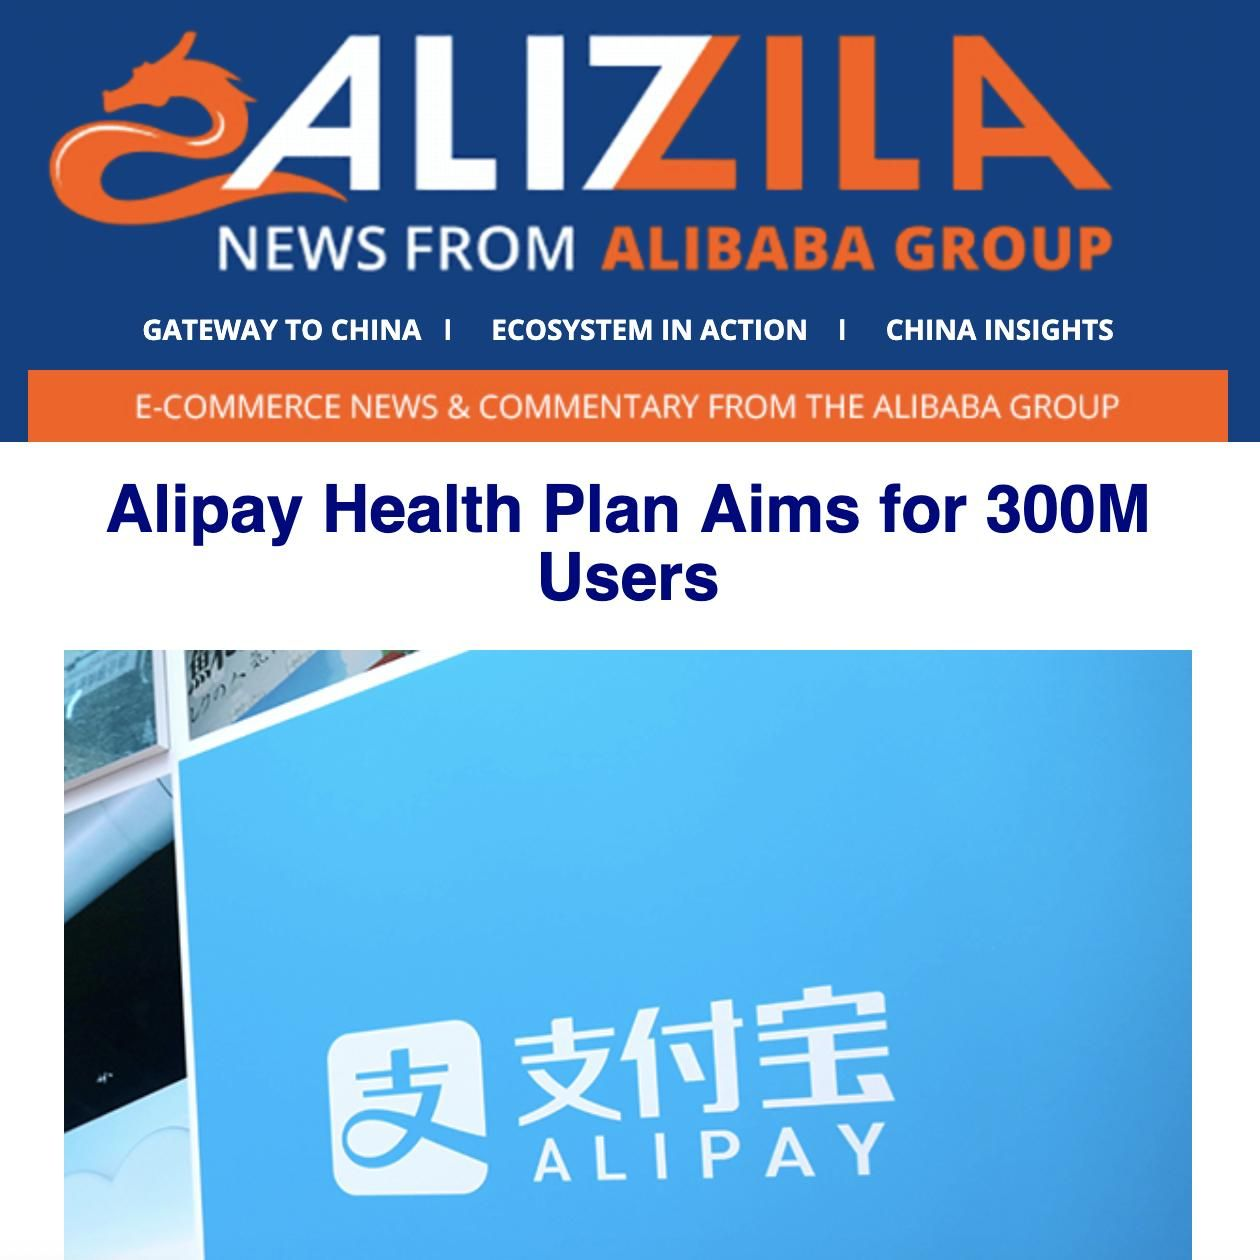 This week at Alibaba: Alipay helps low-income consumers ...